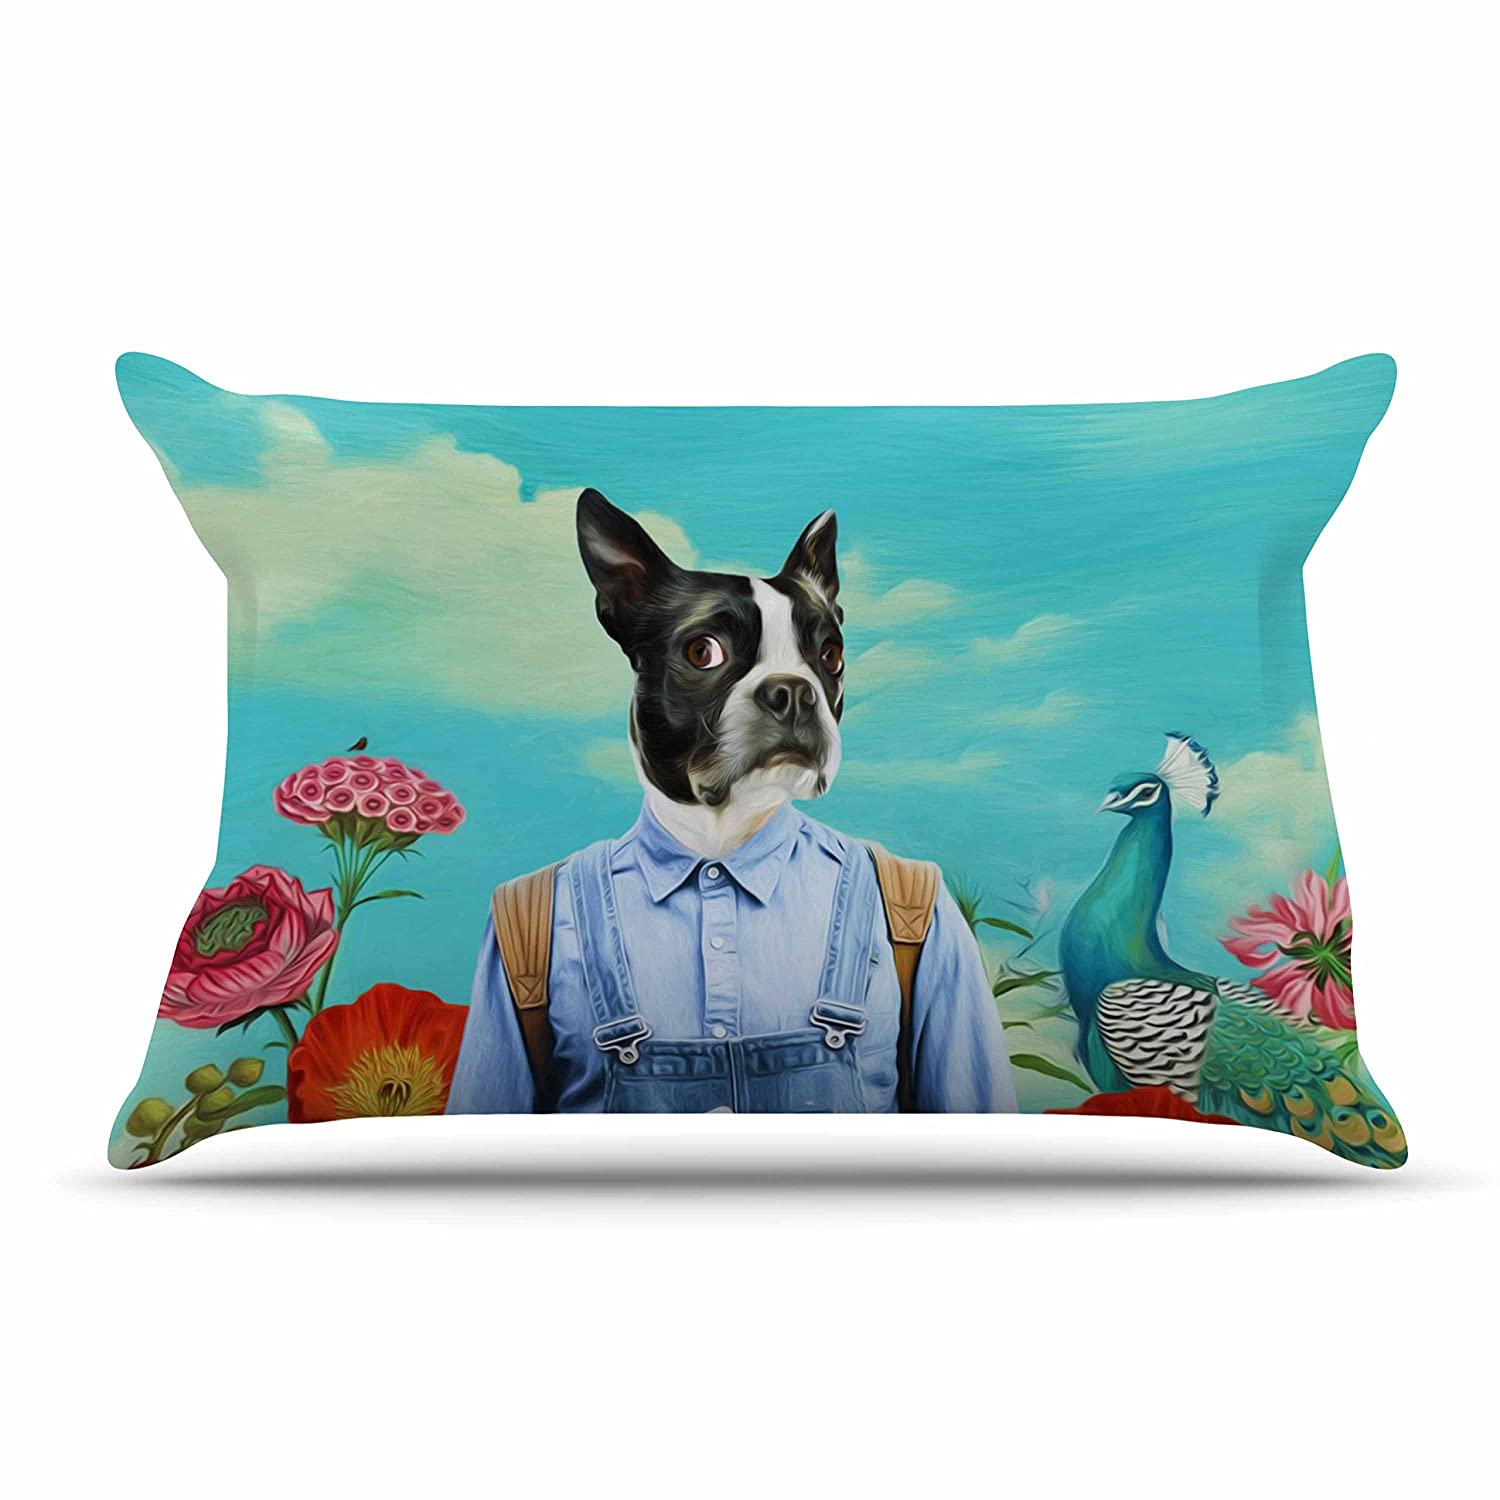 Kess InHouse Natt Family Portrait N3 Blue Dog Standard Pillow Case 30 X 20 30 by 20-Inch